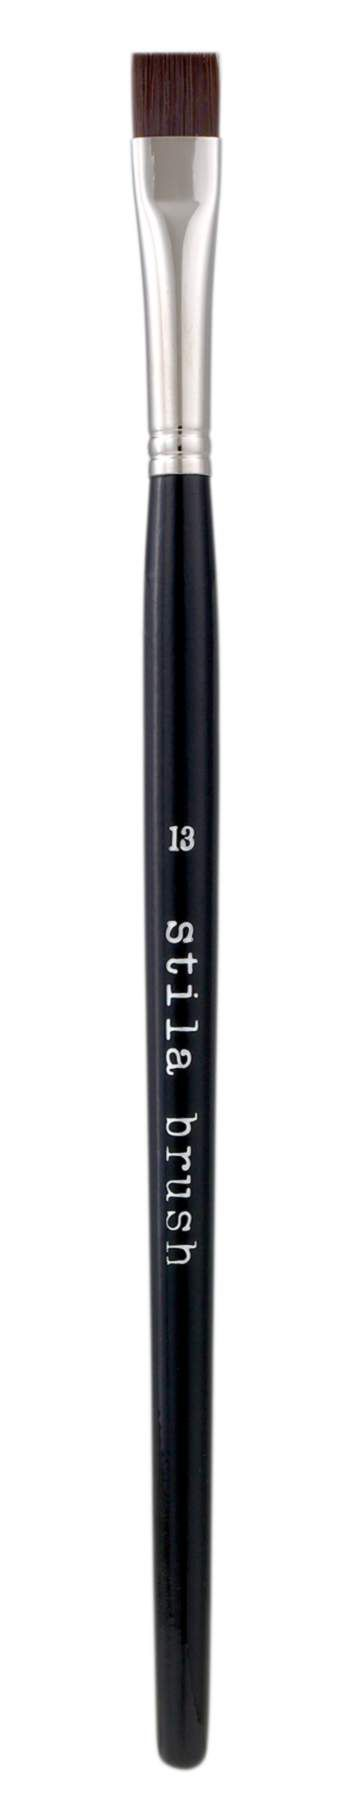 One step eyeliner brush